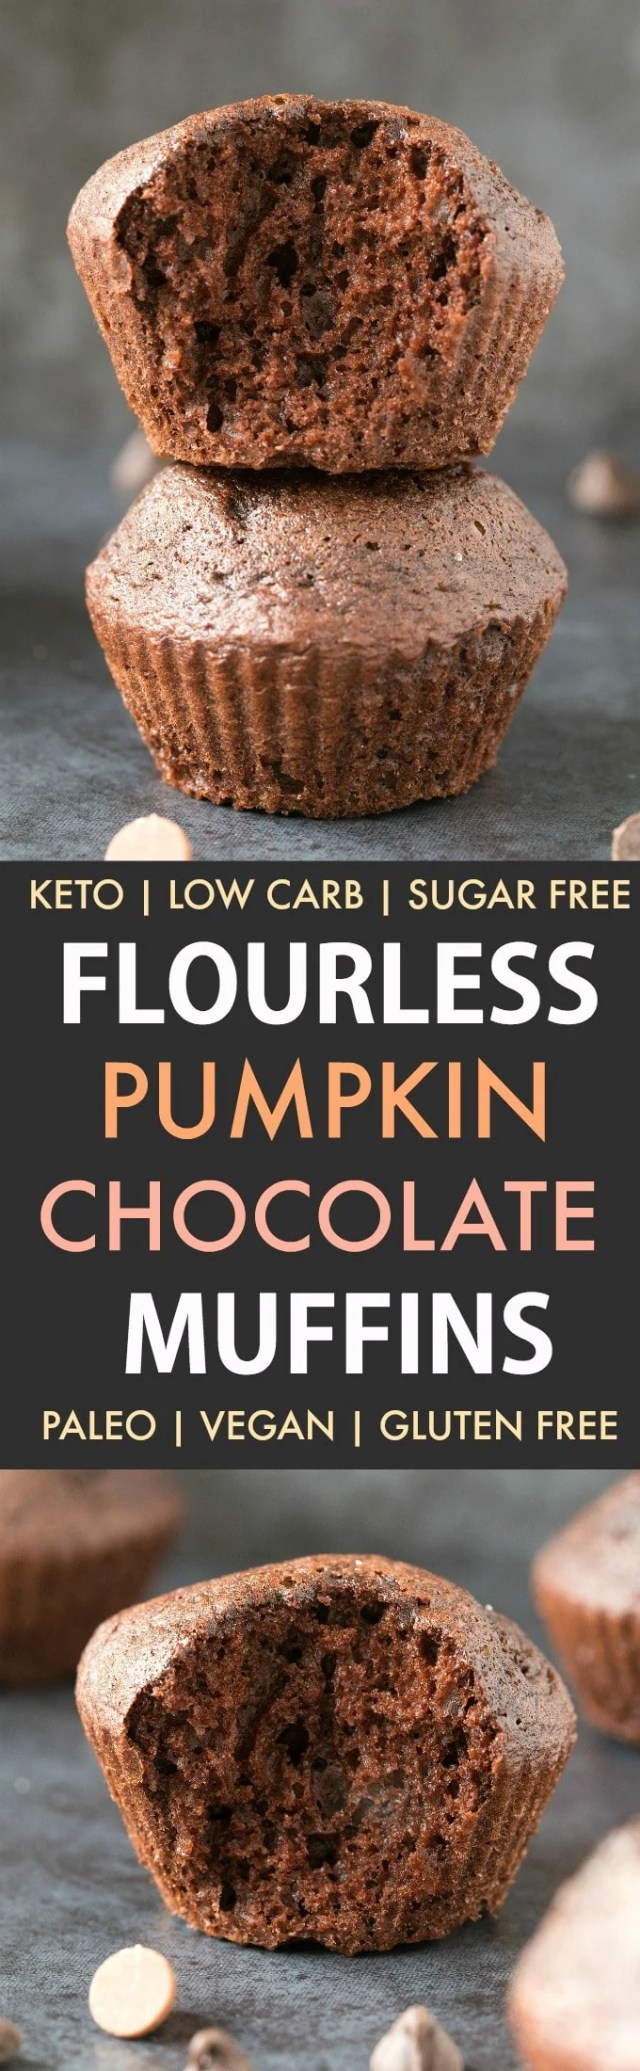 Healthy Flourless Pumpkin Chocolate Muffins in a collage